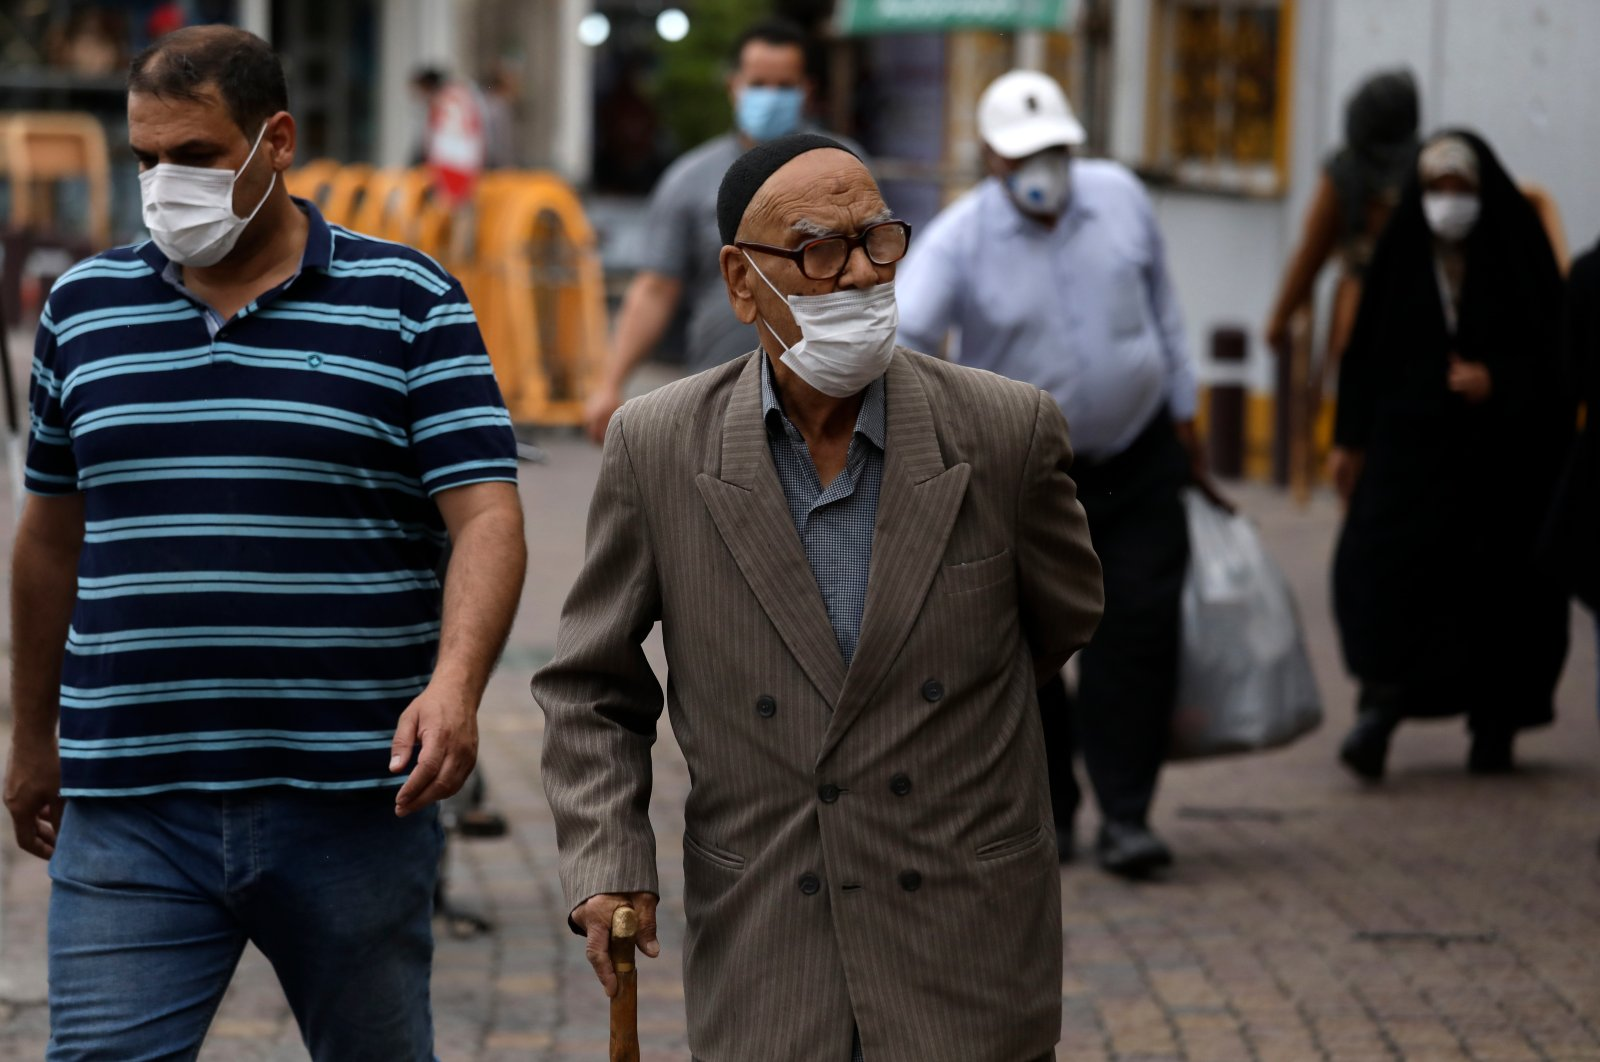 People wearing protective face masks to help prevent the spread of the coronavirus walk on a sidewalk in the city of Zanjan, some 330 kilometers (205 miles) west of the capital Tehran, Iran, Sunday, July 5, 2020. (AP Photo)